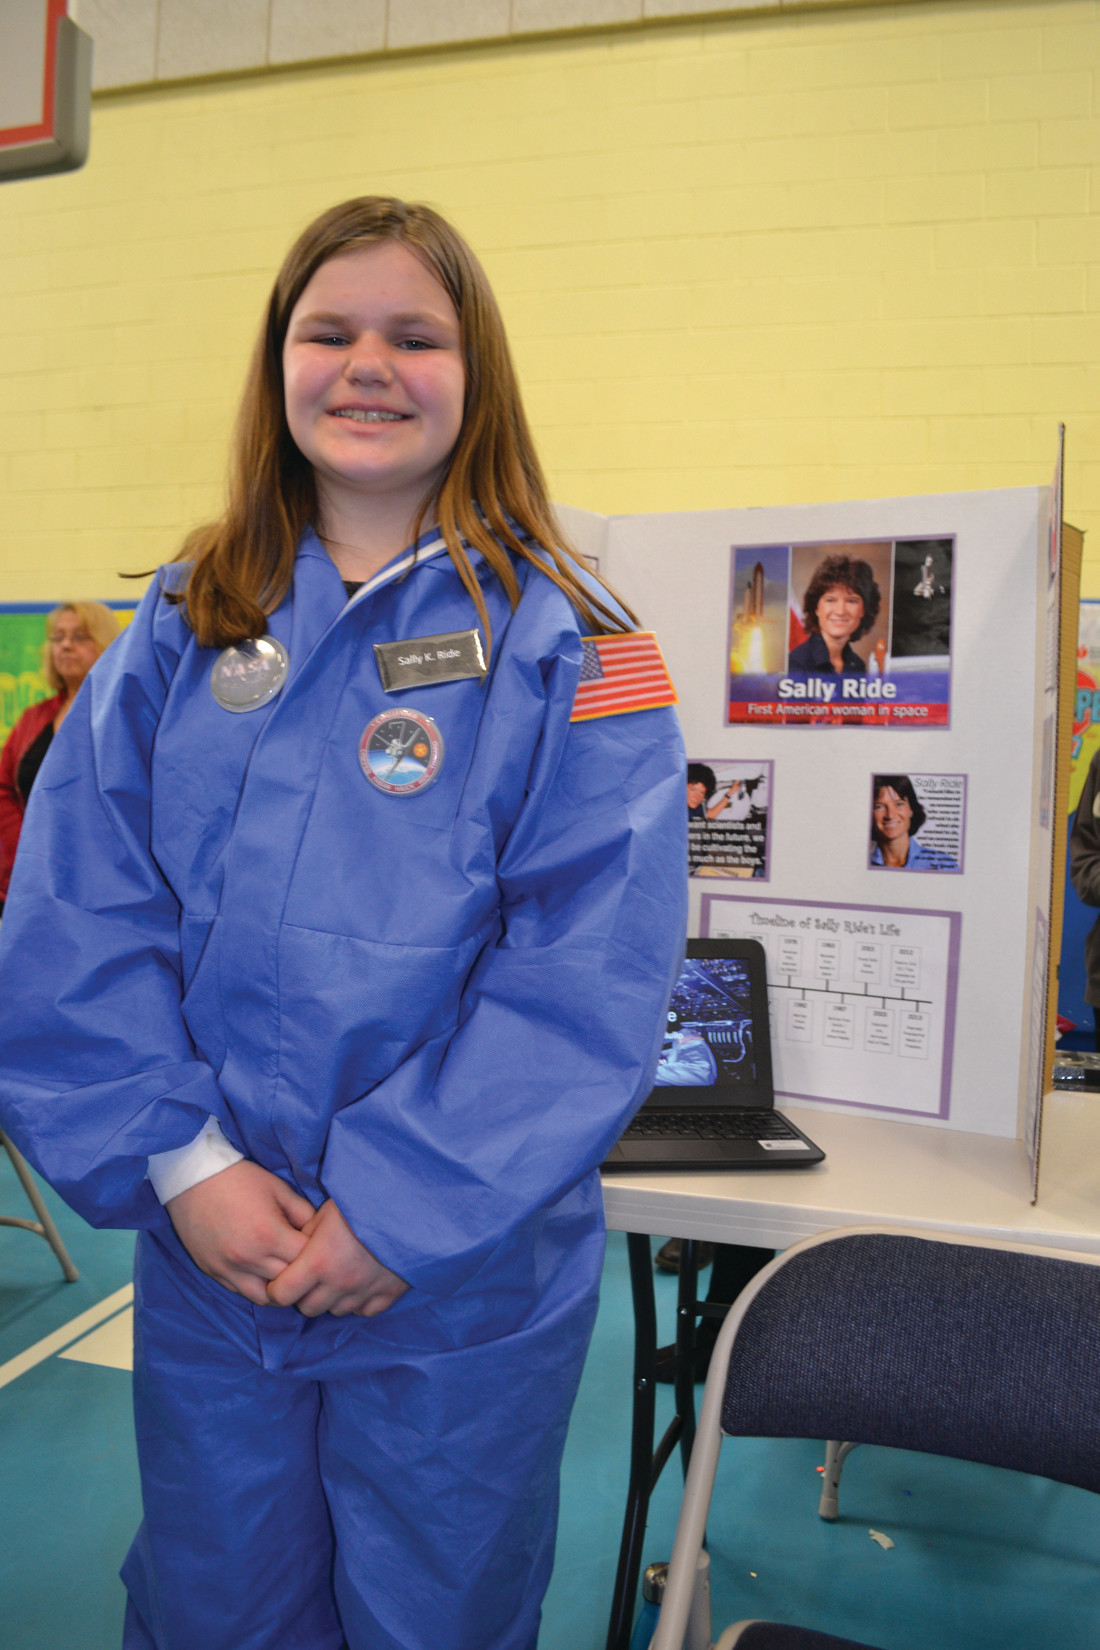 RIDE SALLY RIDE: Georgie Cardullo chose physicist and astronaut Sally Ride, the first American woman in space, for her project.